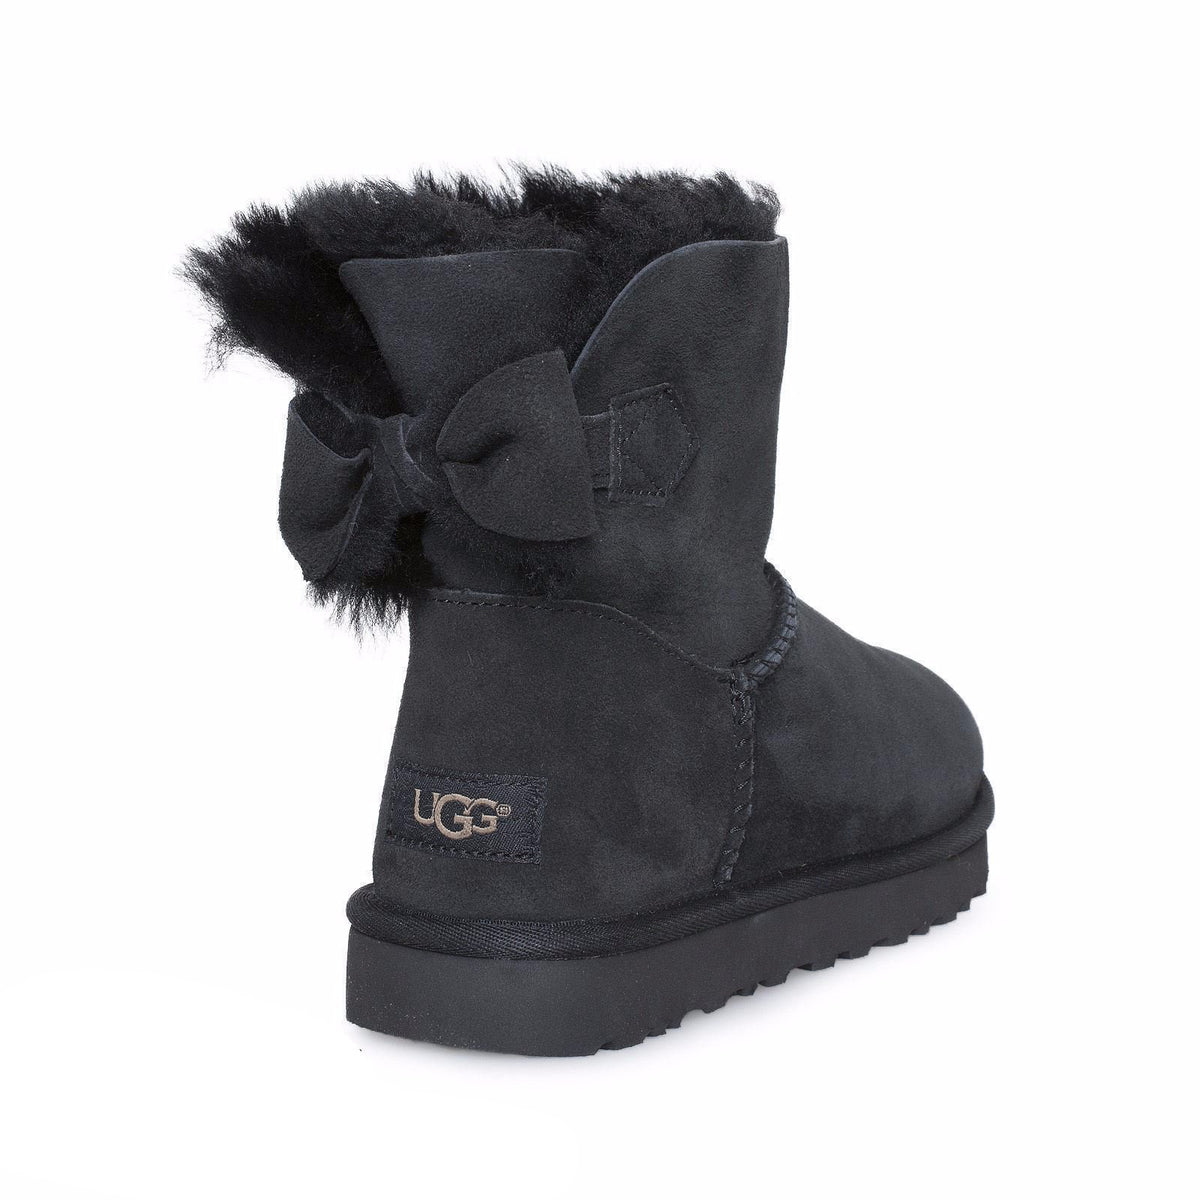 UGG Naveah Black Boots – MyCozyBoots